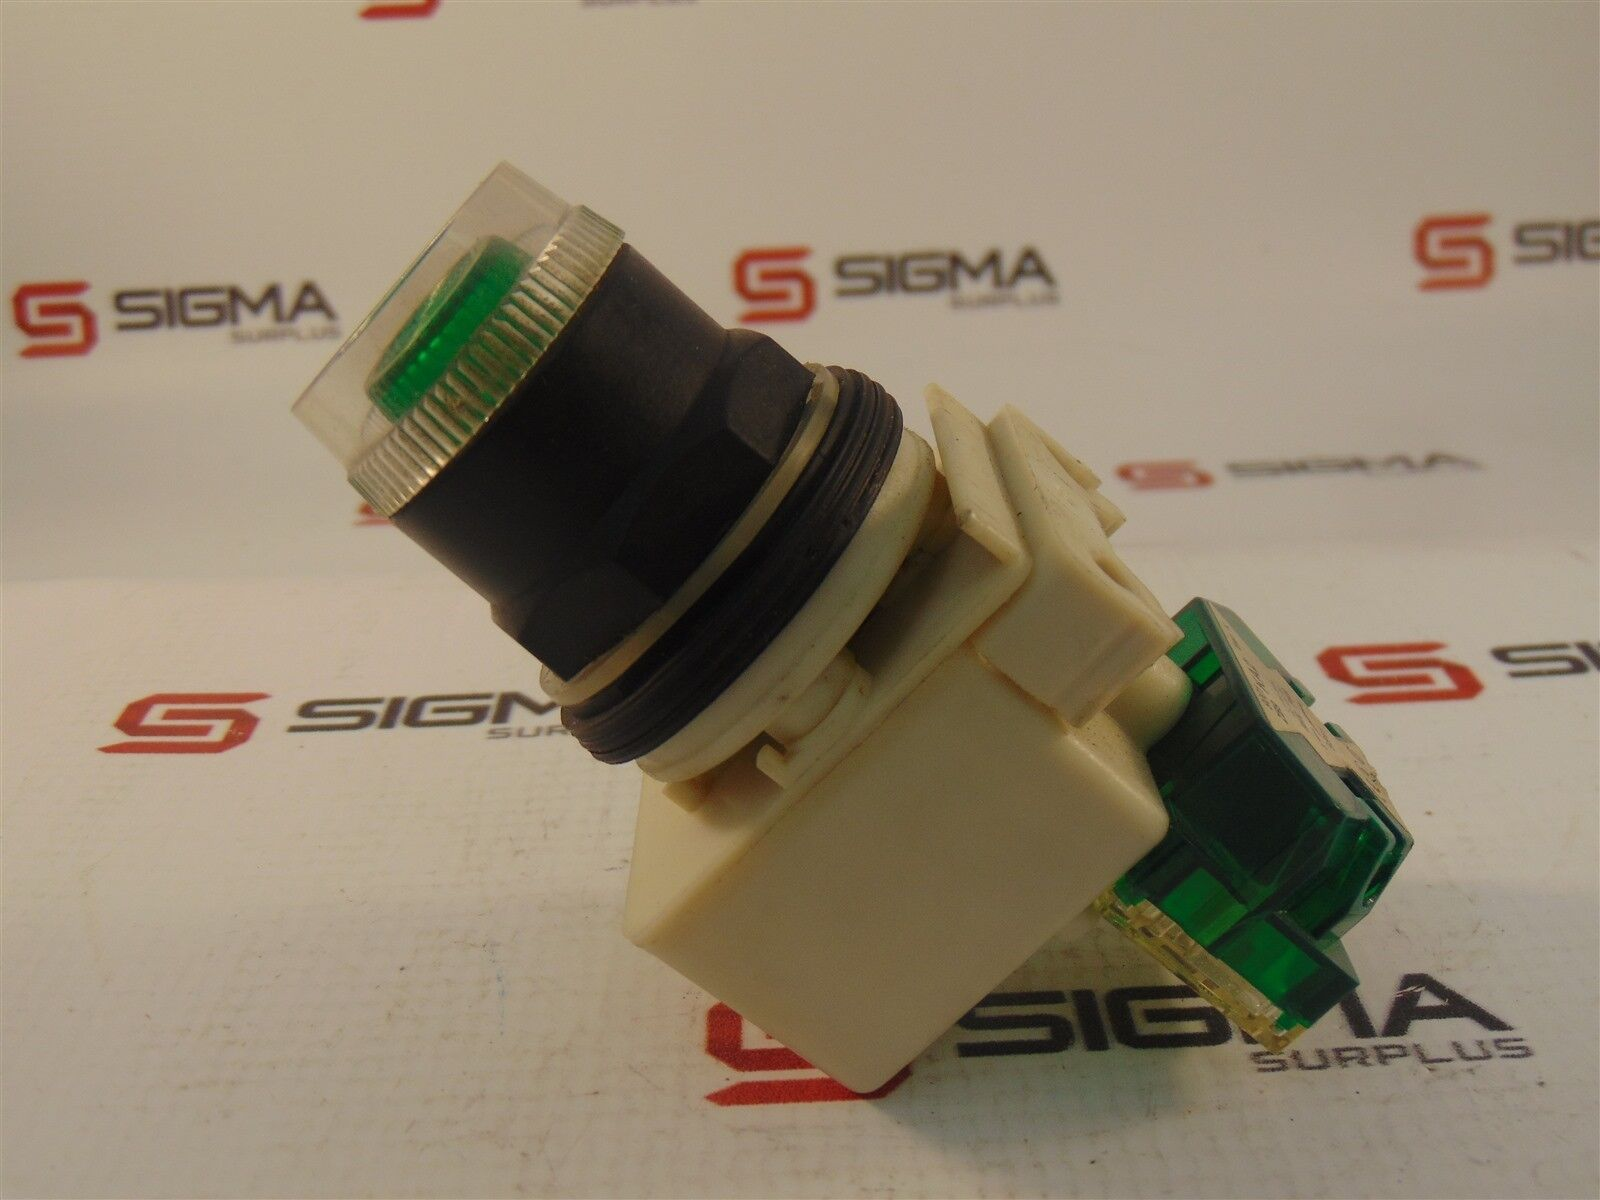 Square D KM35 Green Pushbutton series H 24-28V w/9001KA2 Contact Block Series K